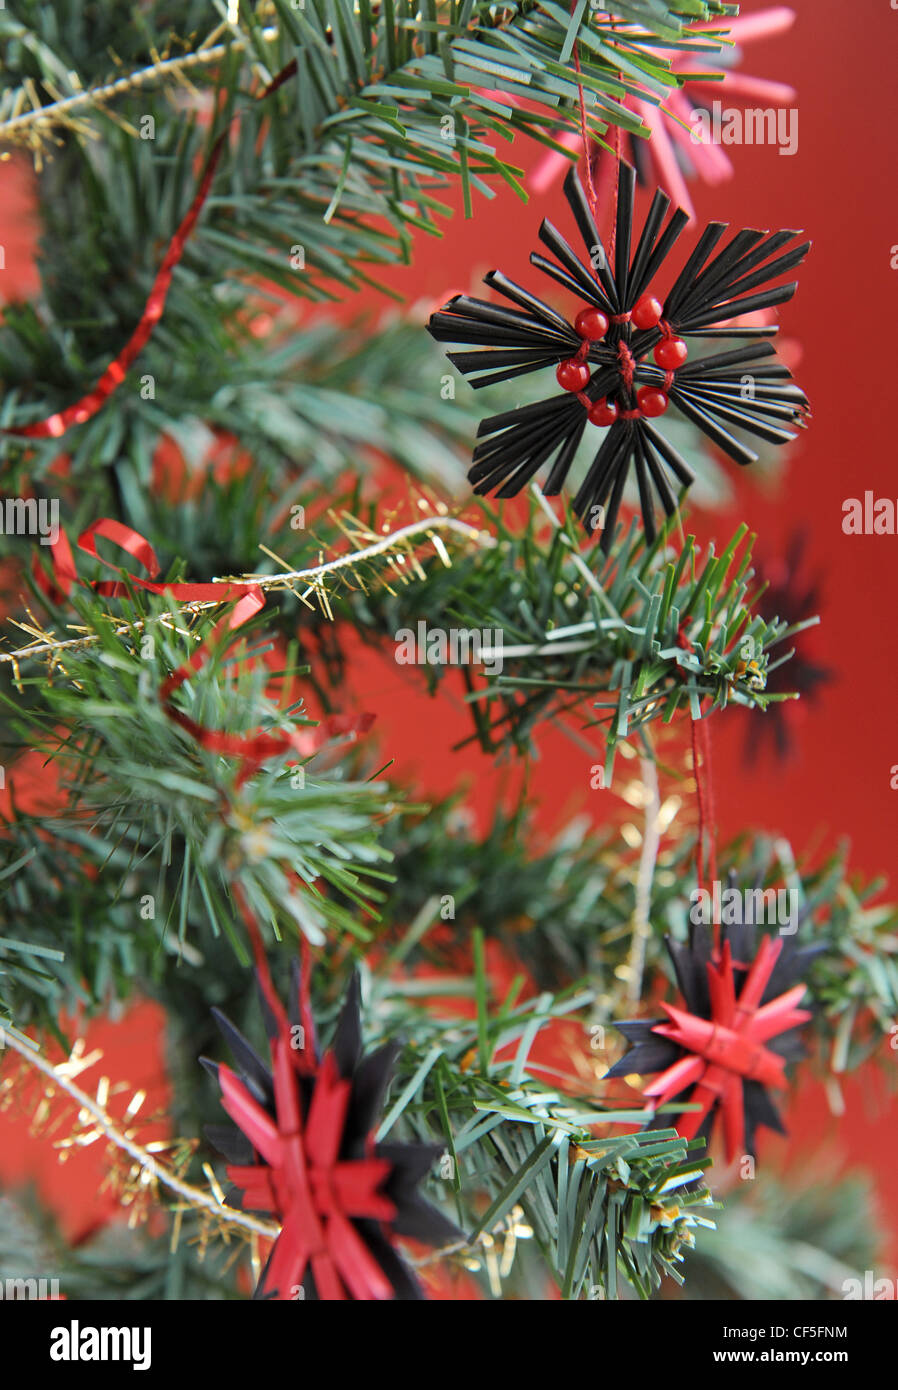 Black And Red Christmas Snowflake Shaped Tree Decorations Hanging